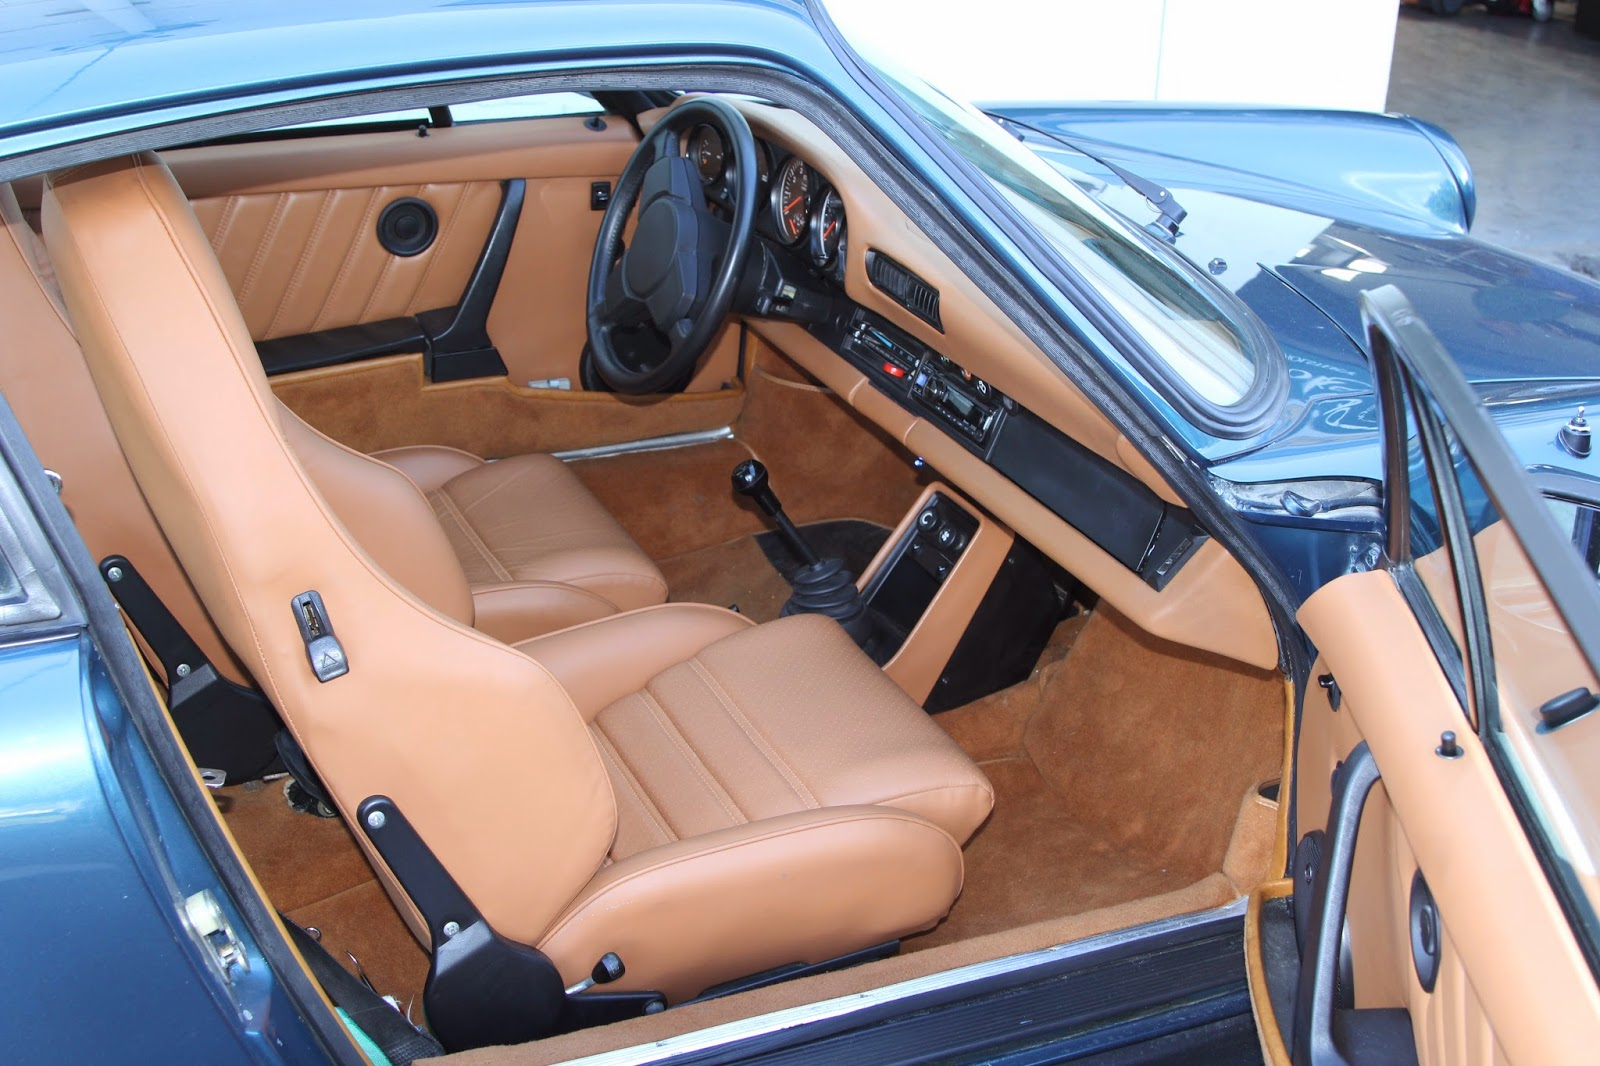 Cooks Upholstery and Classic Restoration: Auto Upholstery Bay Area